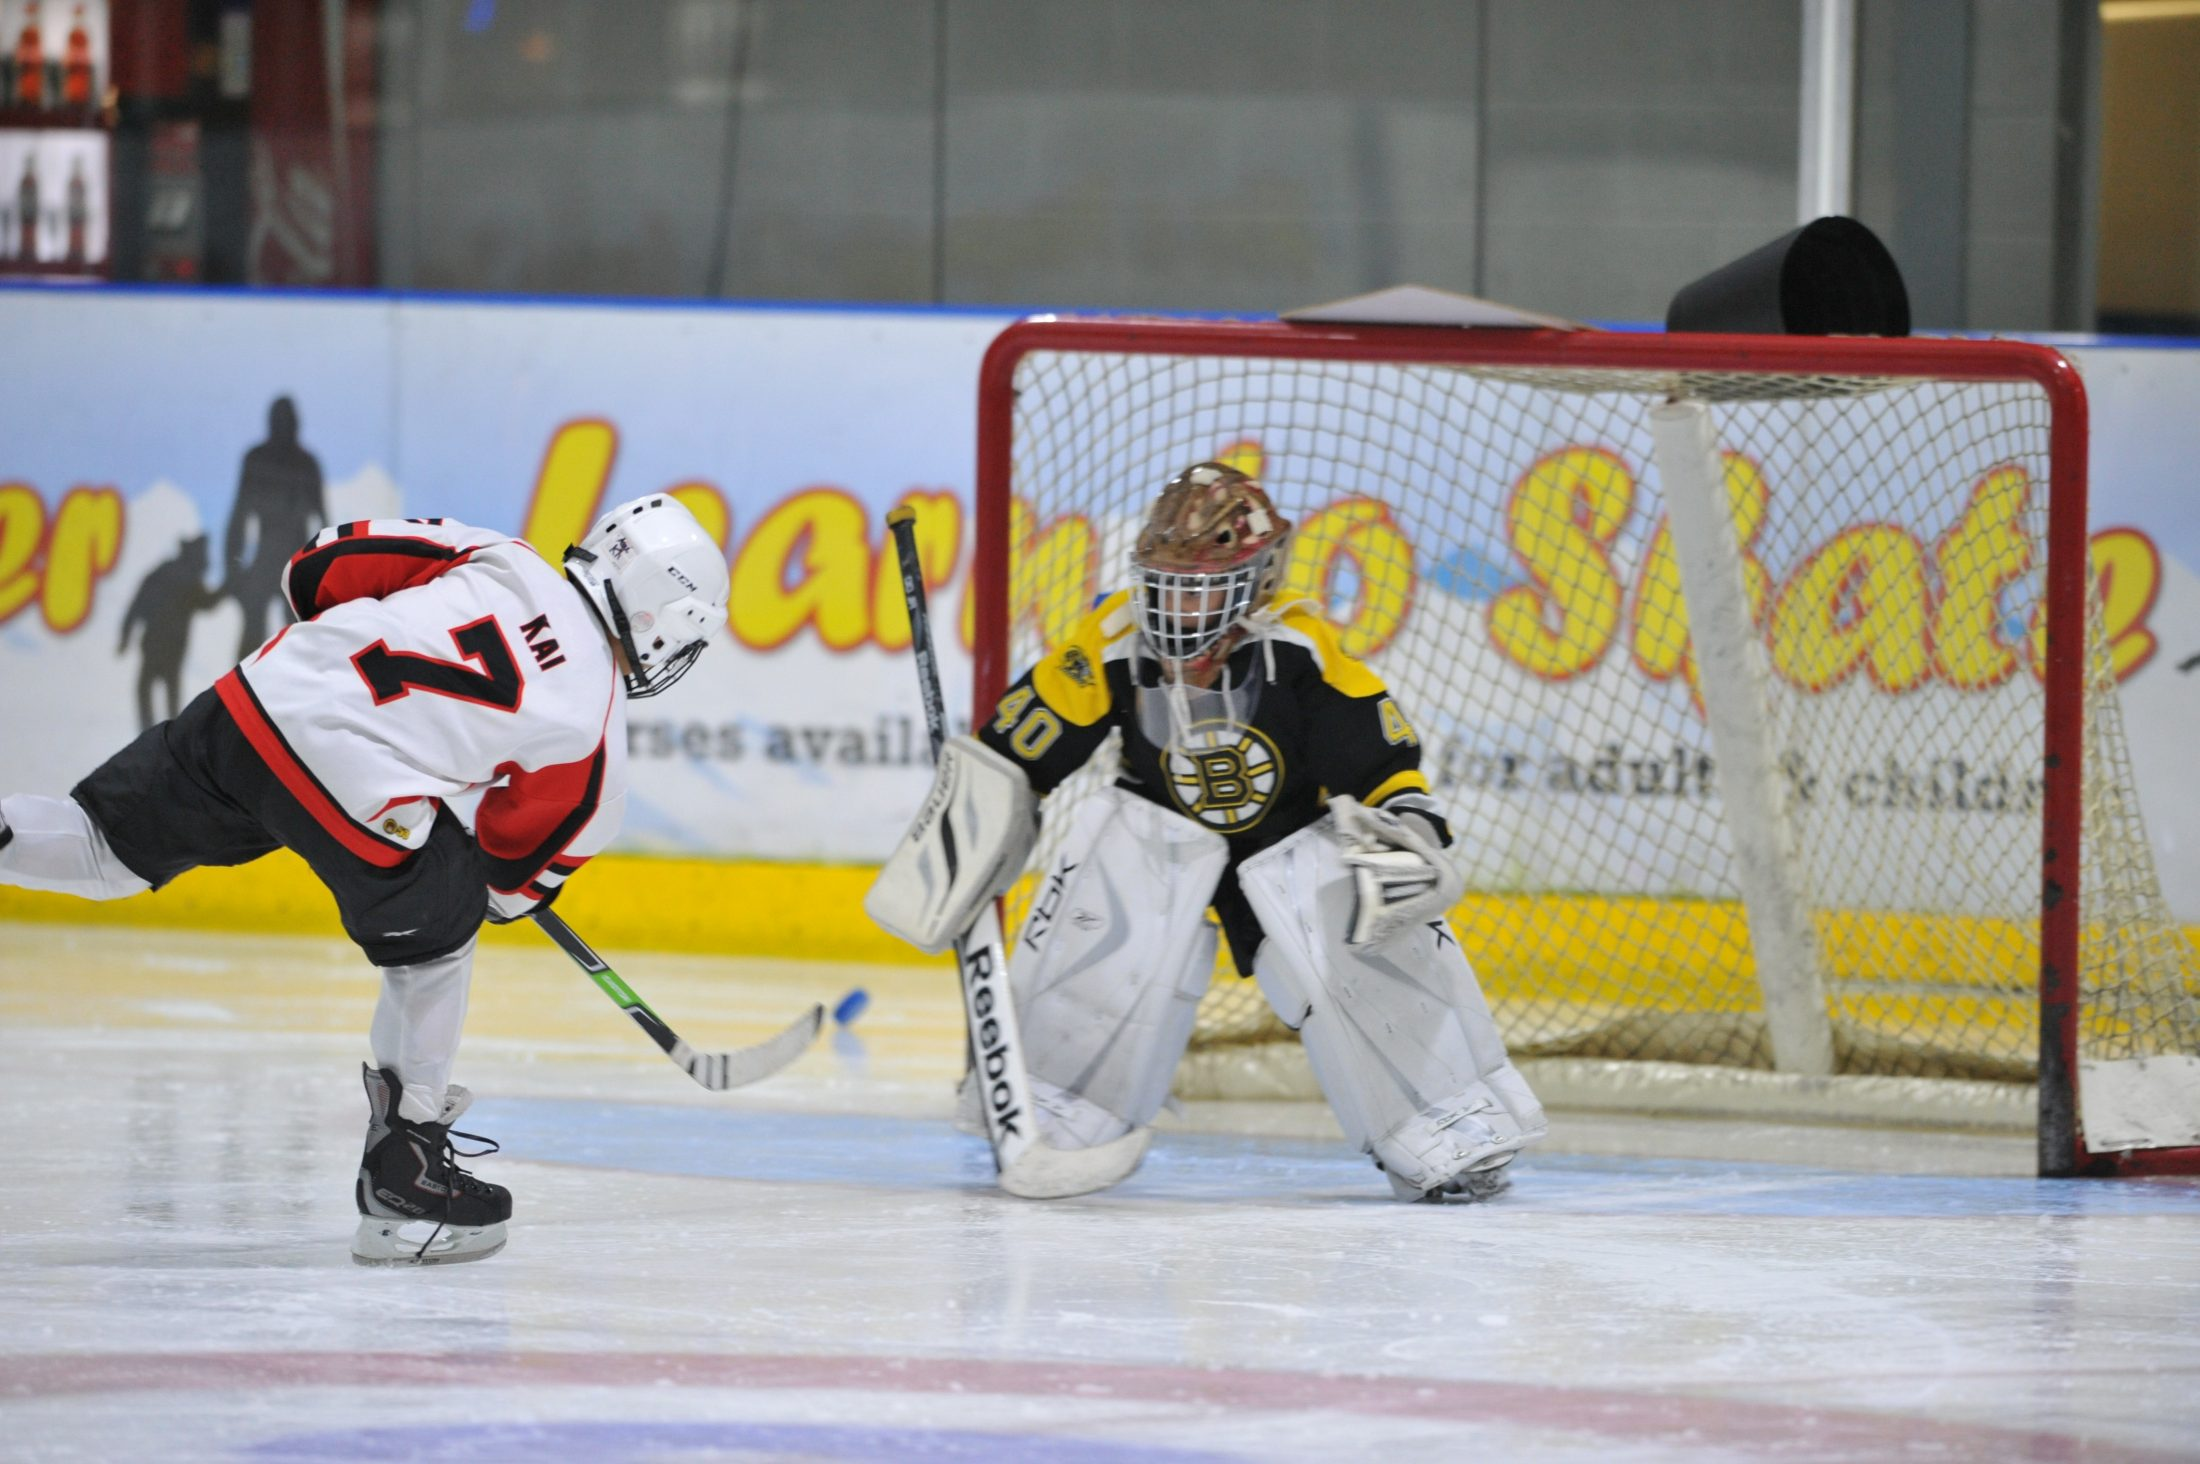 Junior ice hockey match at Silver Blades Ice Rink Widnes 18/01/2015